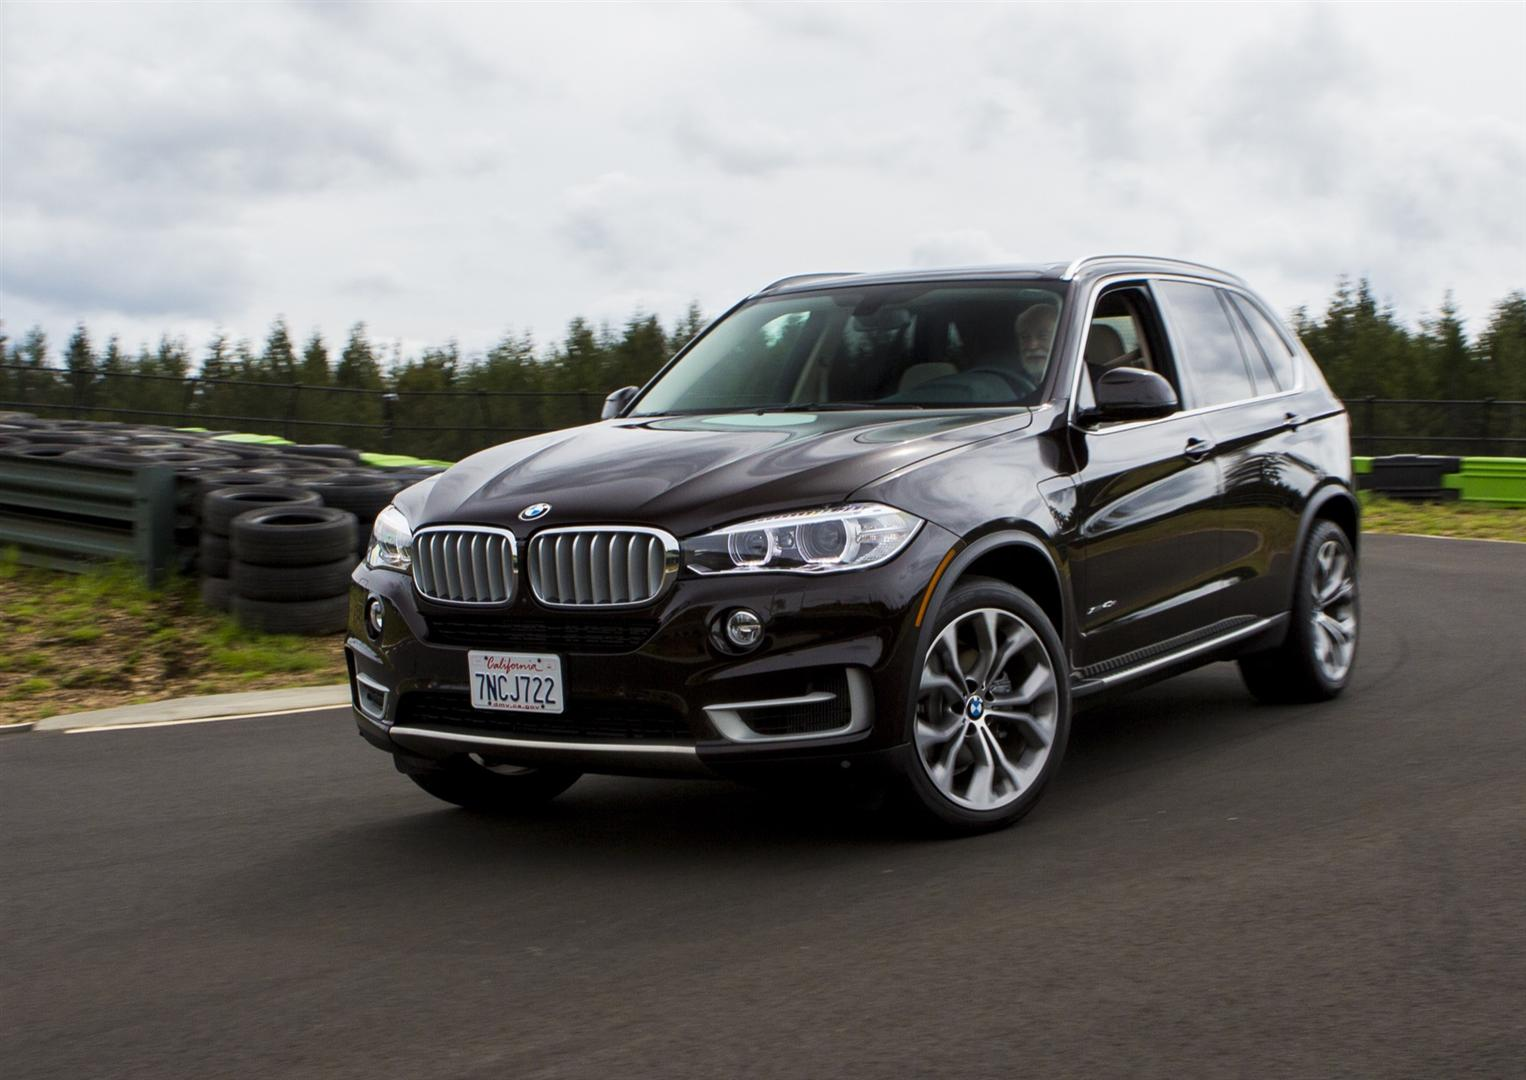 2018 Suvs Worth Waiting for UK WIth The New BMW X5